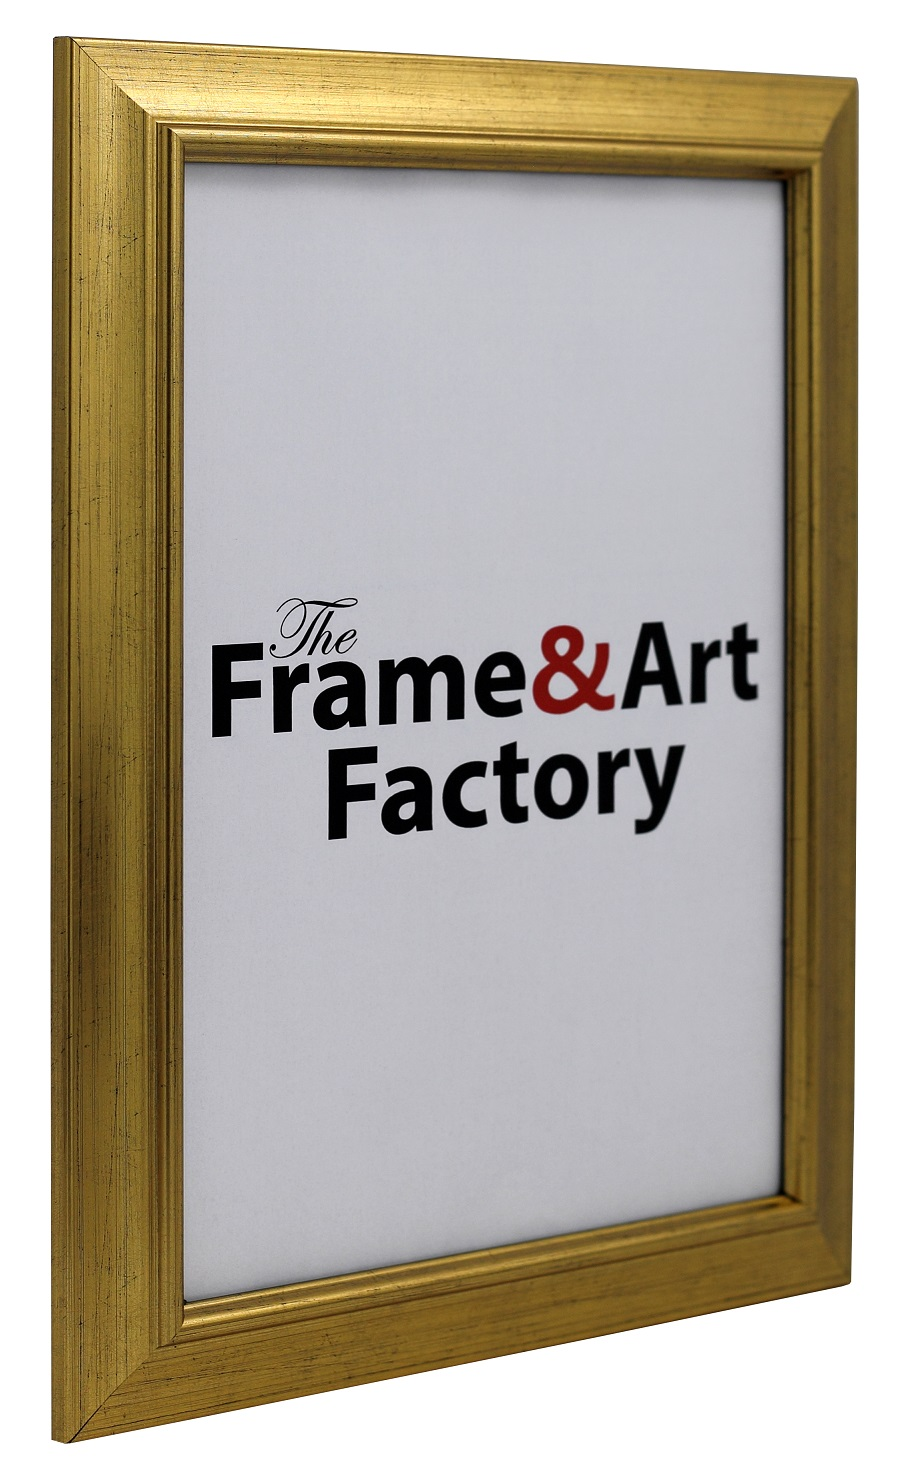 Largest picture framing factory in cape town south africa ready made picture frames solutioingenieria Image collections